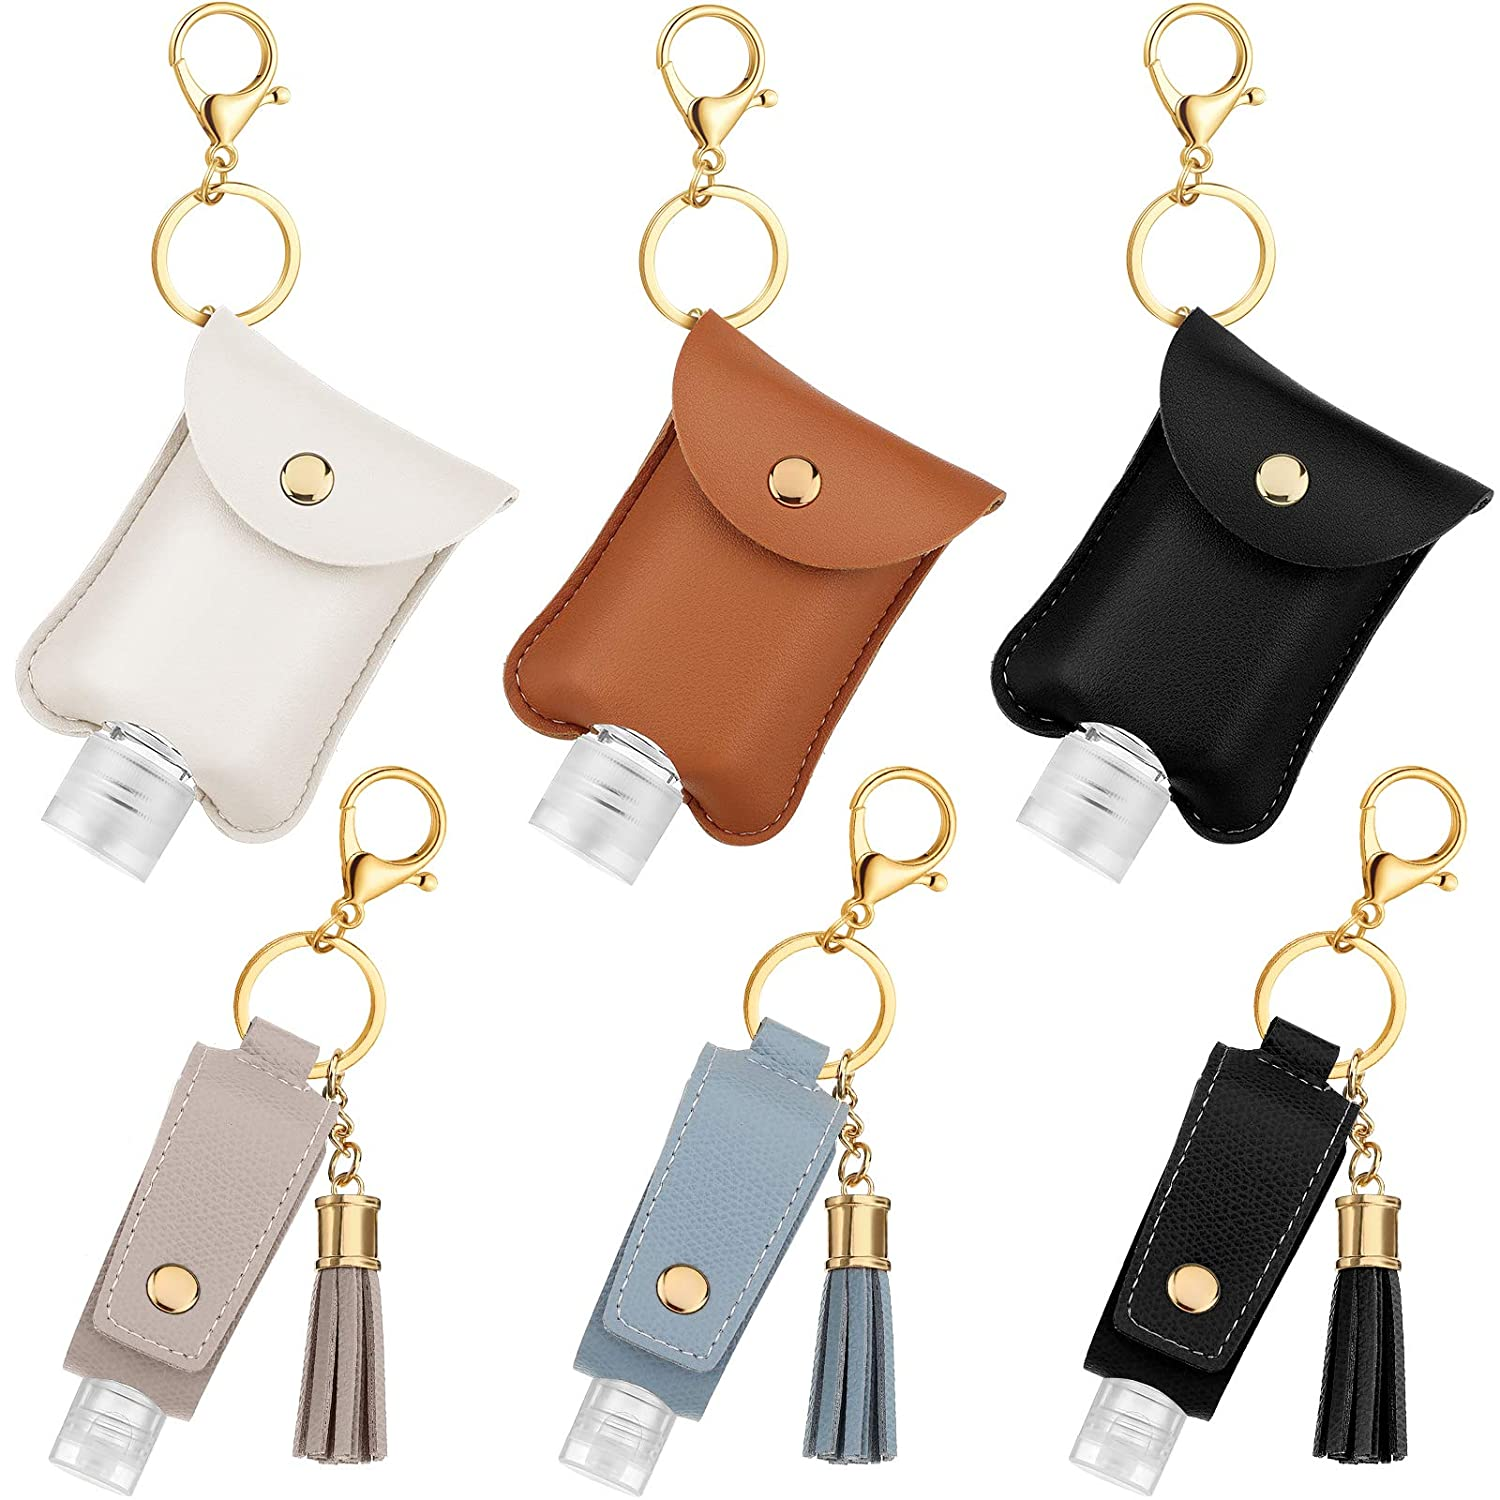 6 Set Hand Sanitizer Holder Keychain with Travel Size Bottles, Fit 30 ml and 60 ml Empty Refillable Bottles with 2 Styles Artificial Leather Holder Keychain Holder Bag for Travel Working Camping